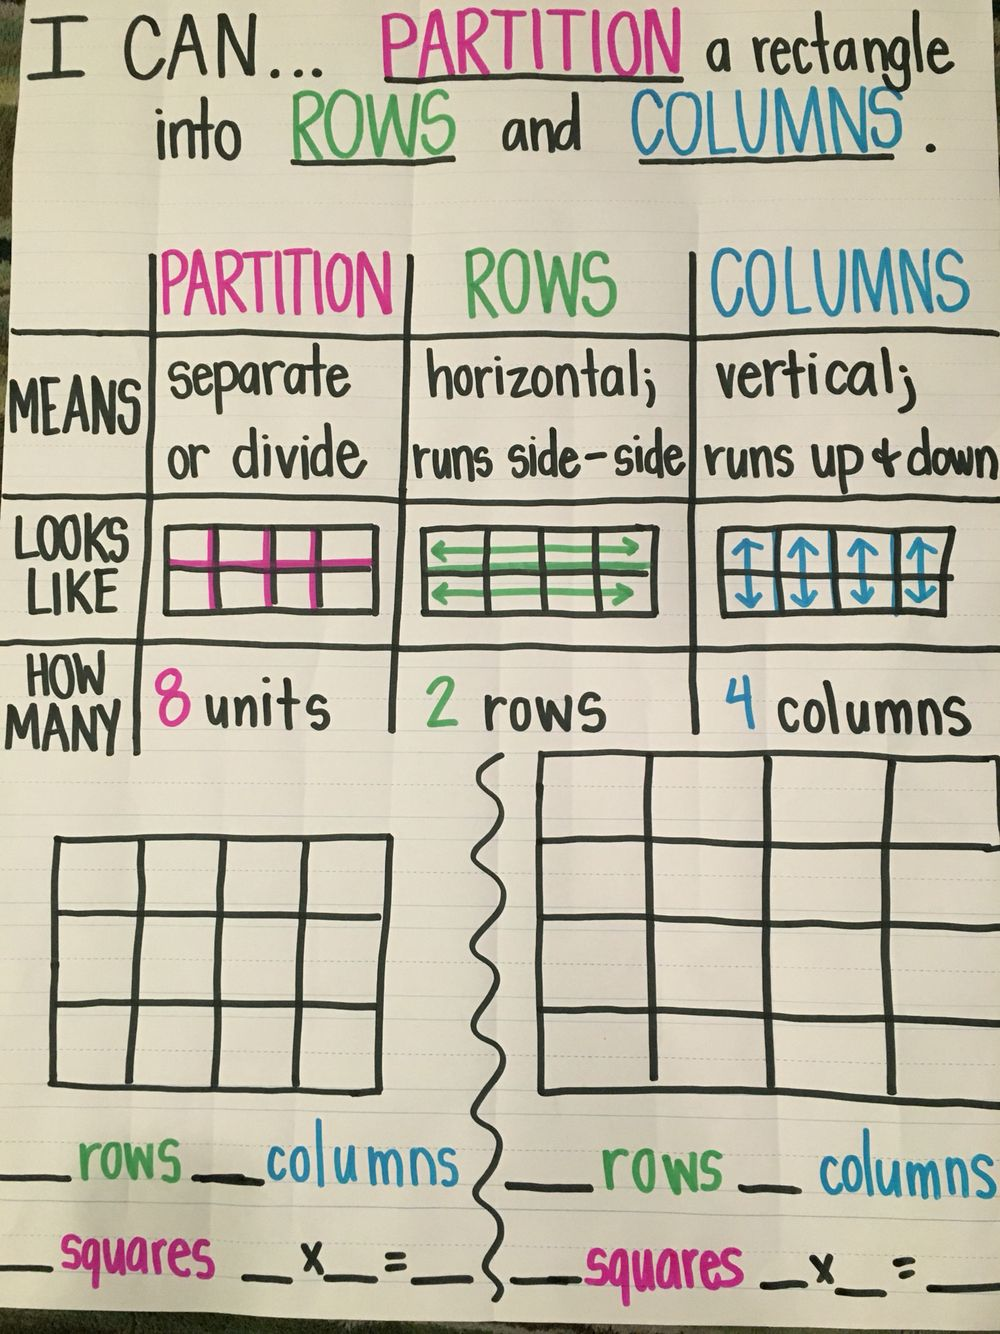 medium resolution of Partition rectangle into Rows and Columns   Math fractions